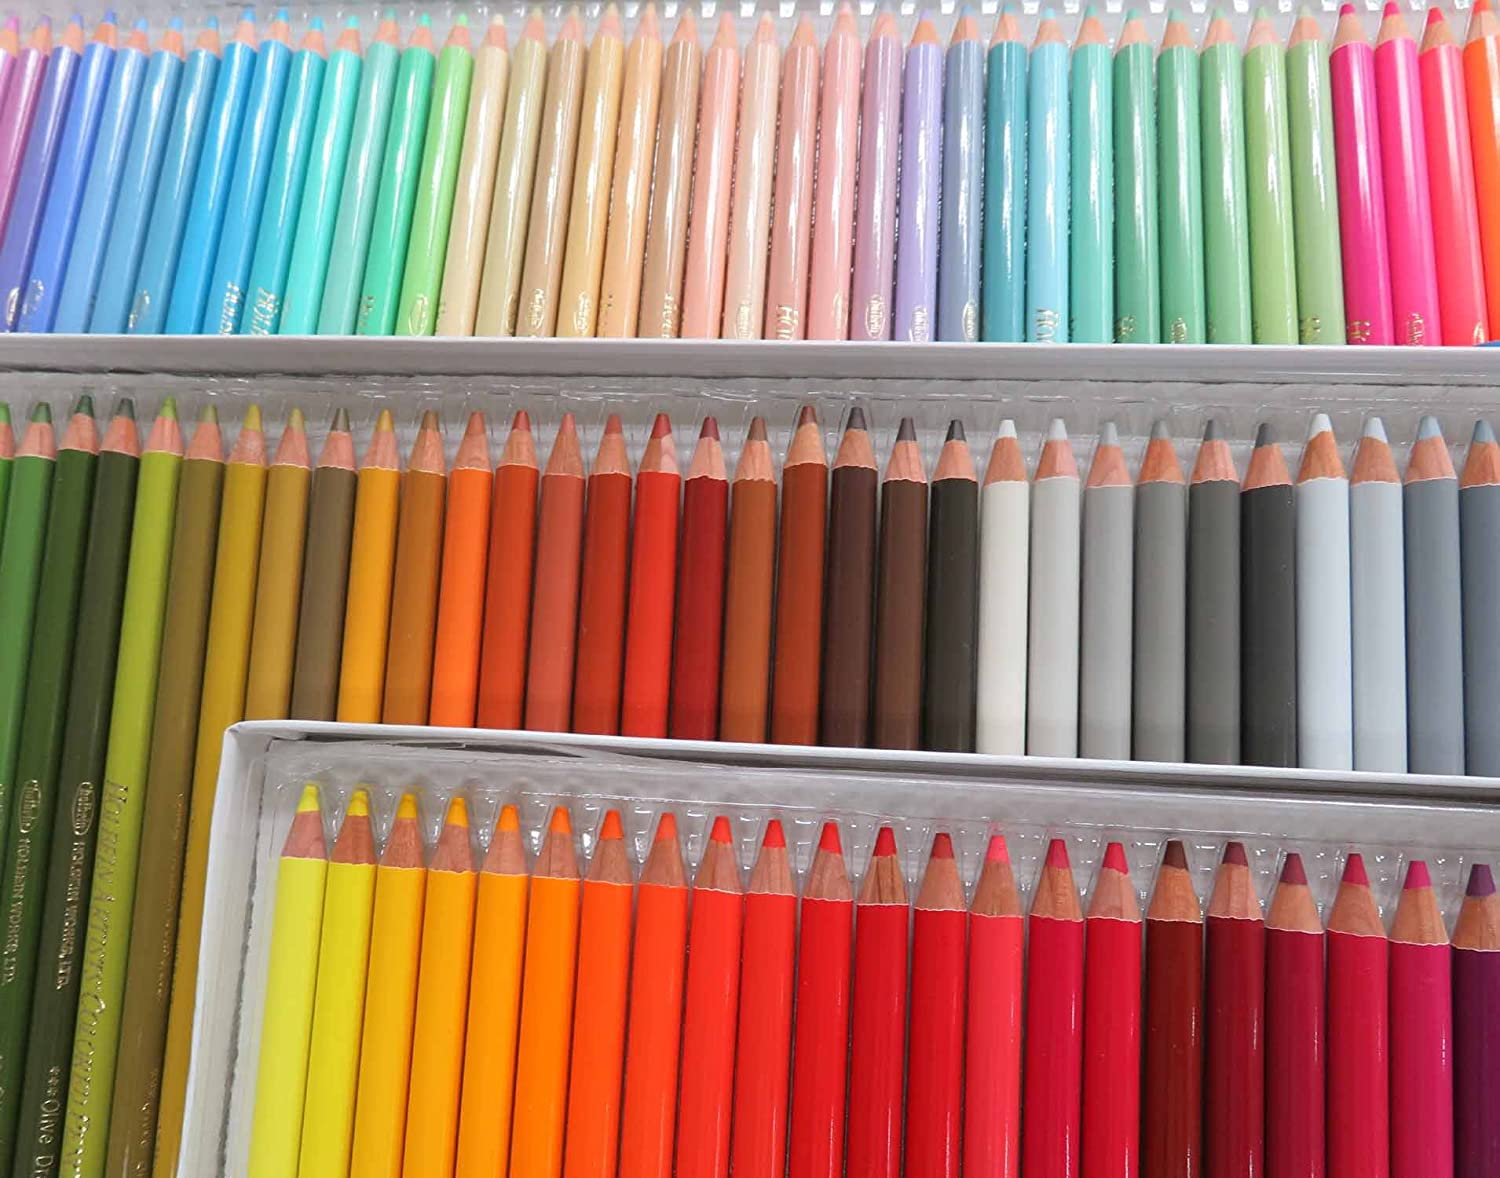 Amazon holbein artist colored pencil 150 colors op945 nvjuhfo Choice Image